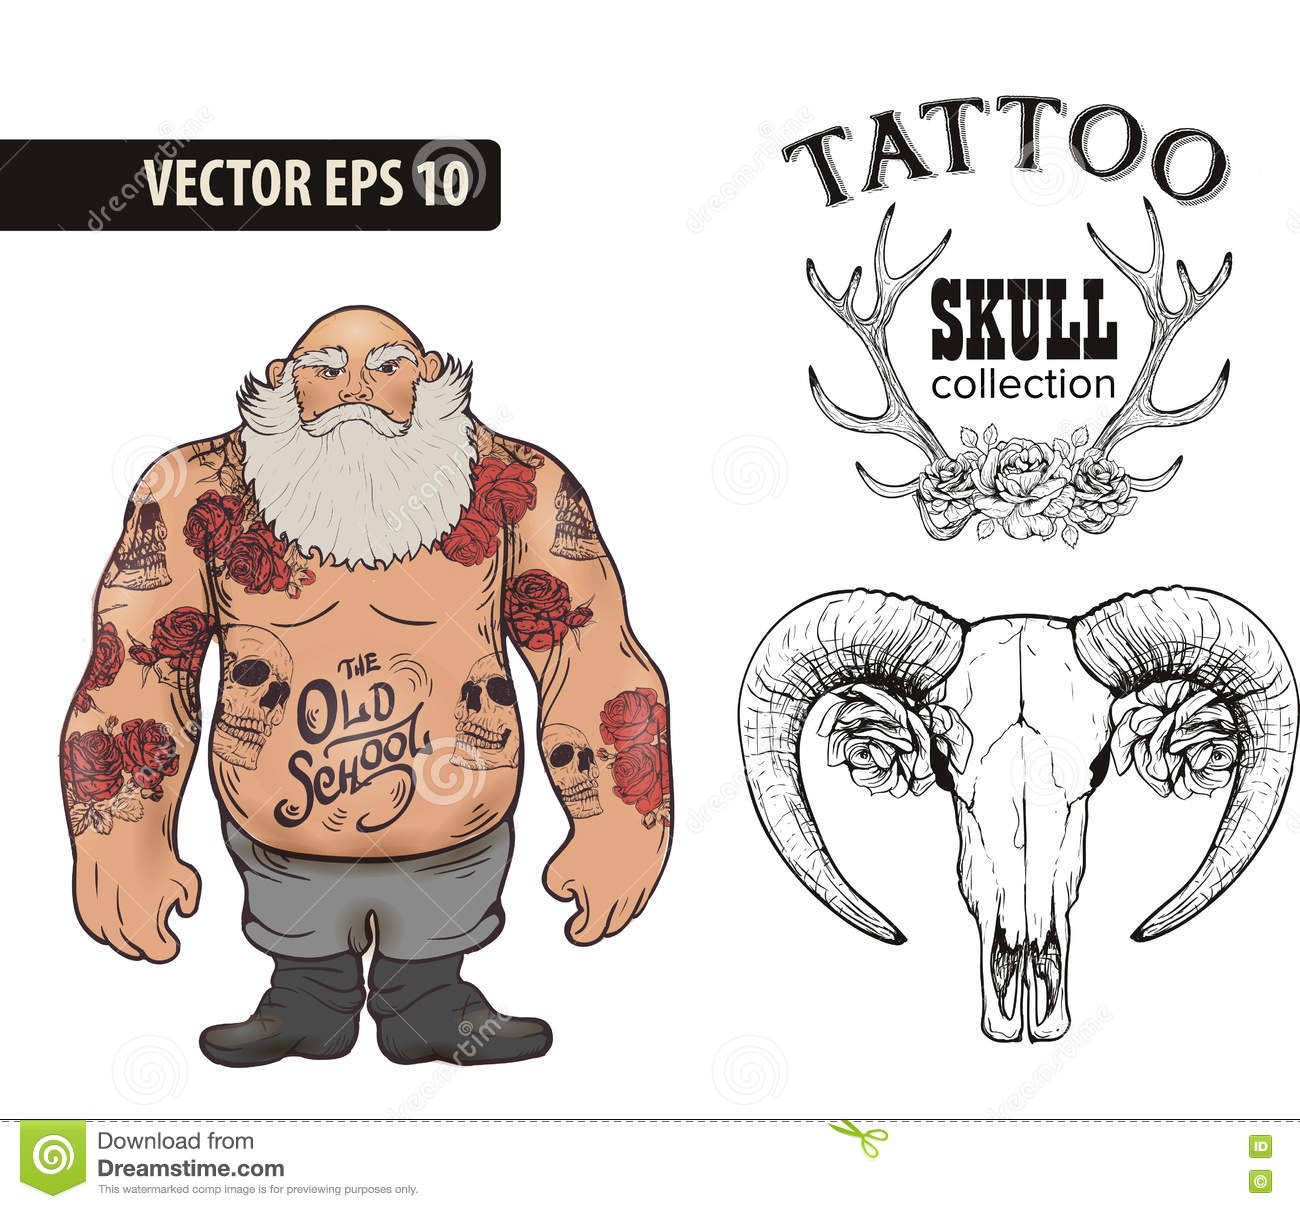 118c5c3fd723a Tattoo art design. New traditional tattoo style. Hand-drawn vector images.  Good for printing on t-shirt. Easy to edit. Tattoo font.